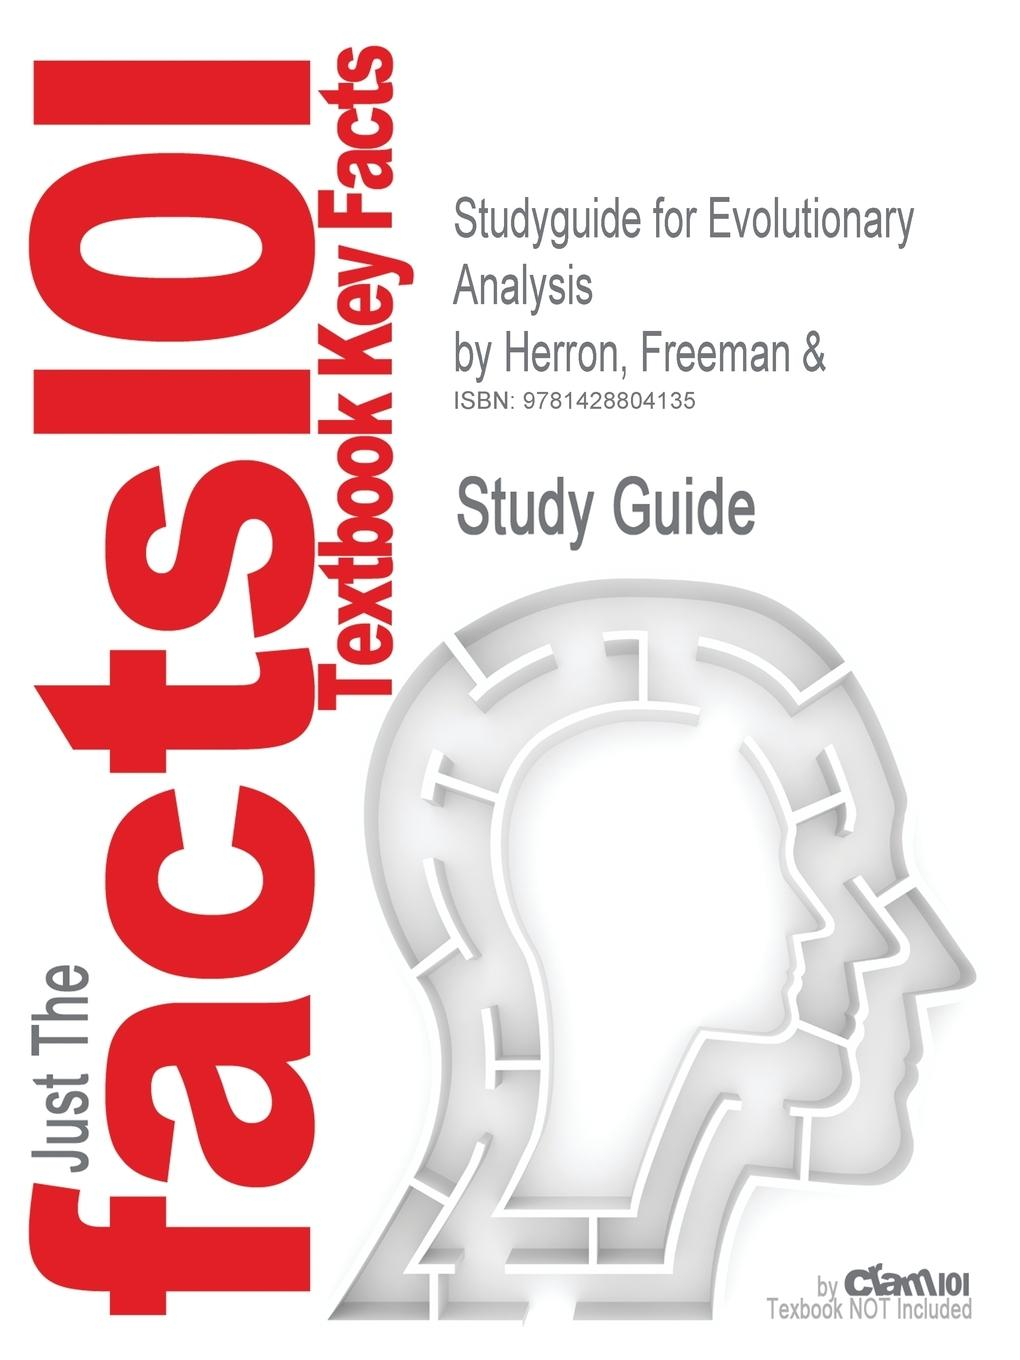 Studyguide for Evolutionary Analysis by Herron, Freeman &, ISBN